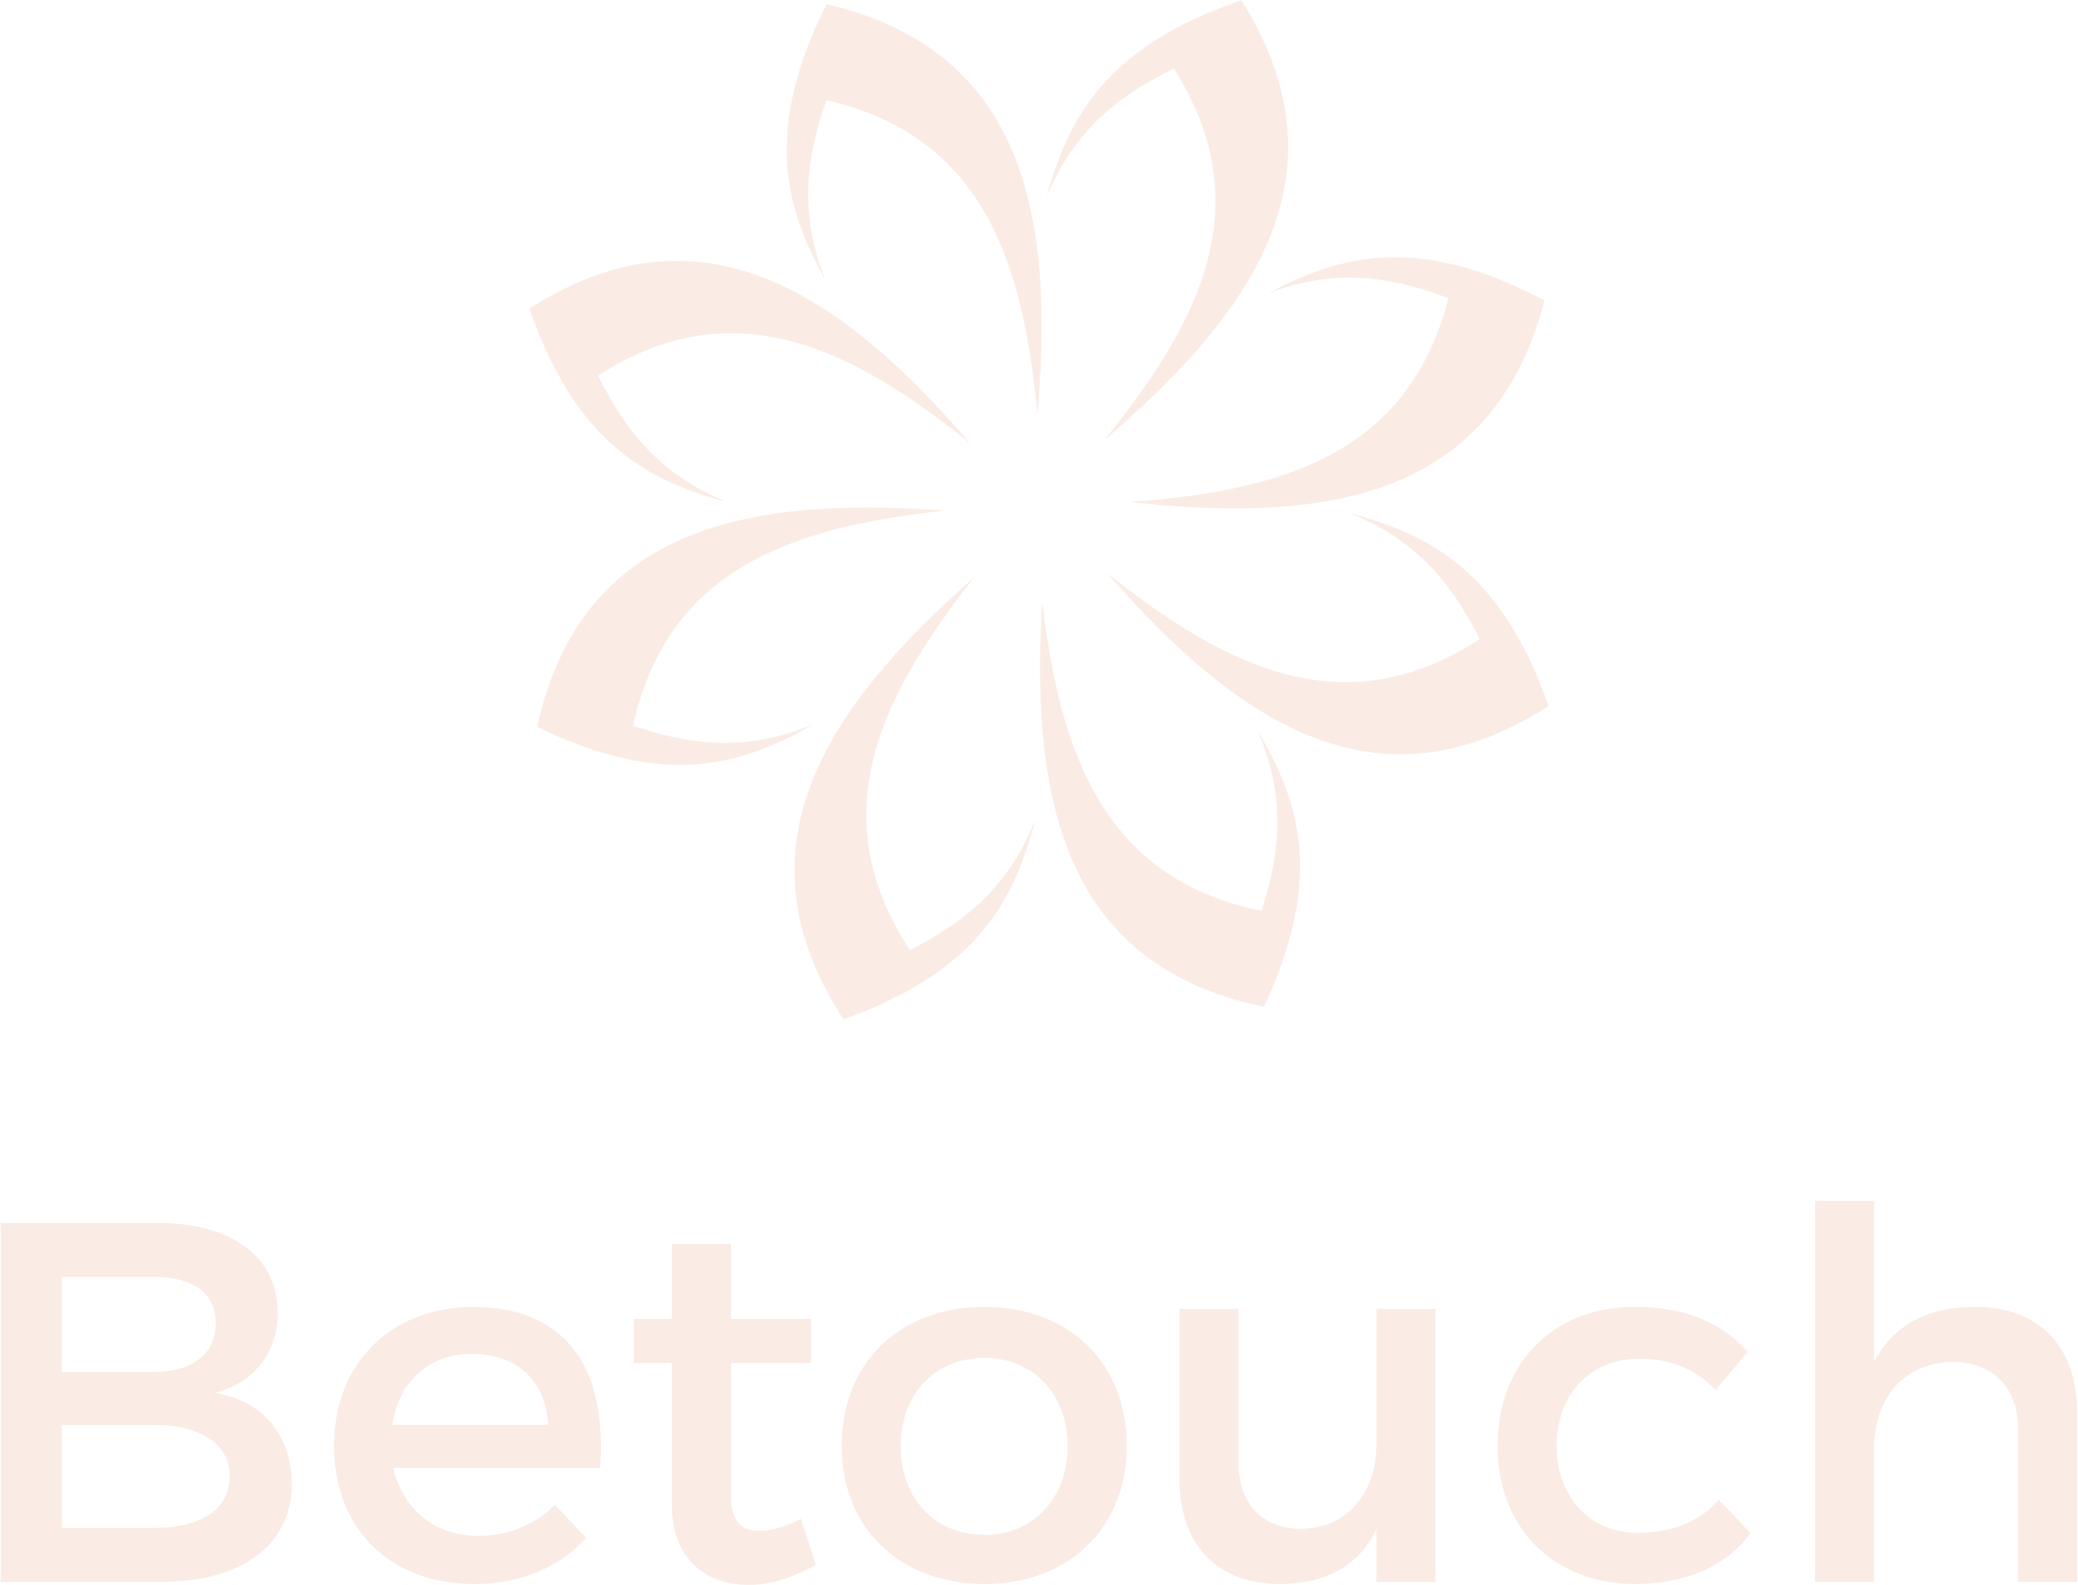 Betouch